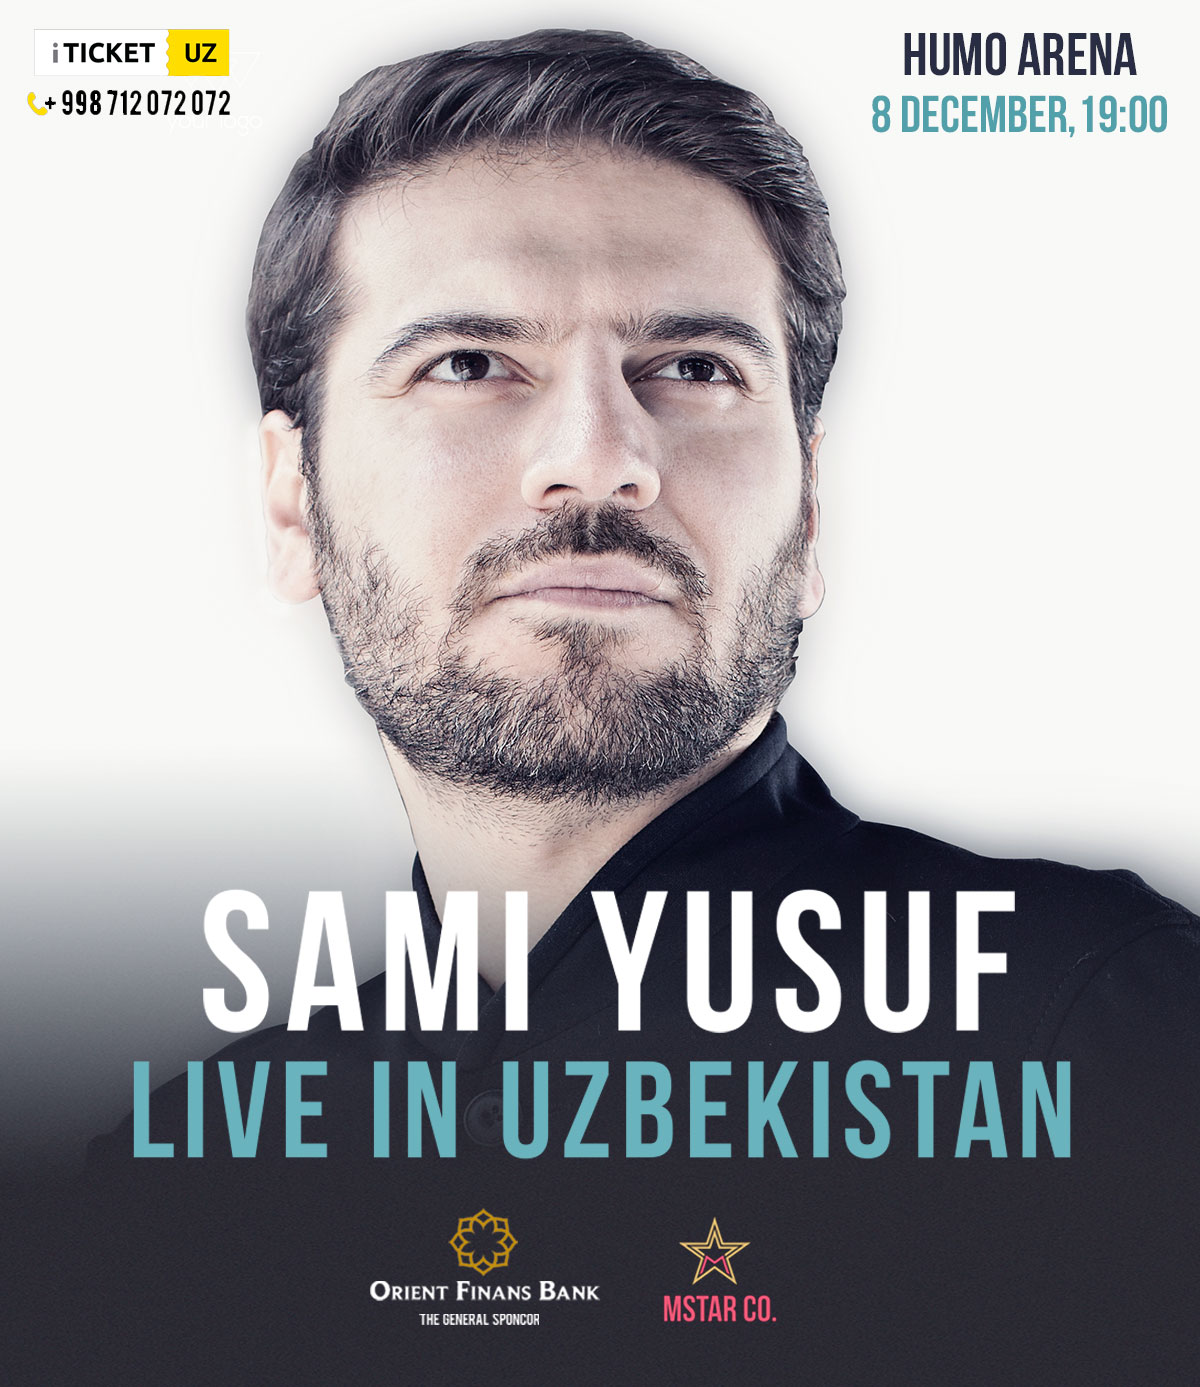 Final Poster For Uzbekistan Concert